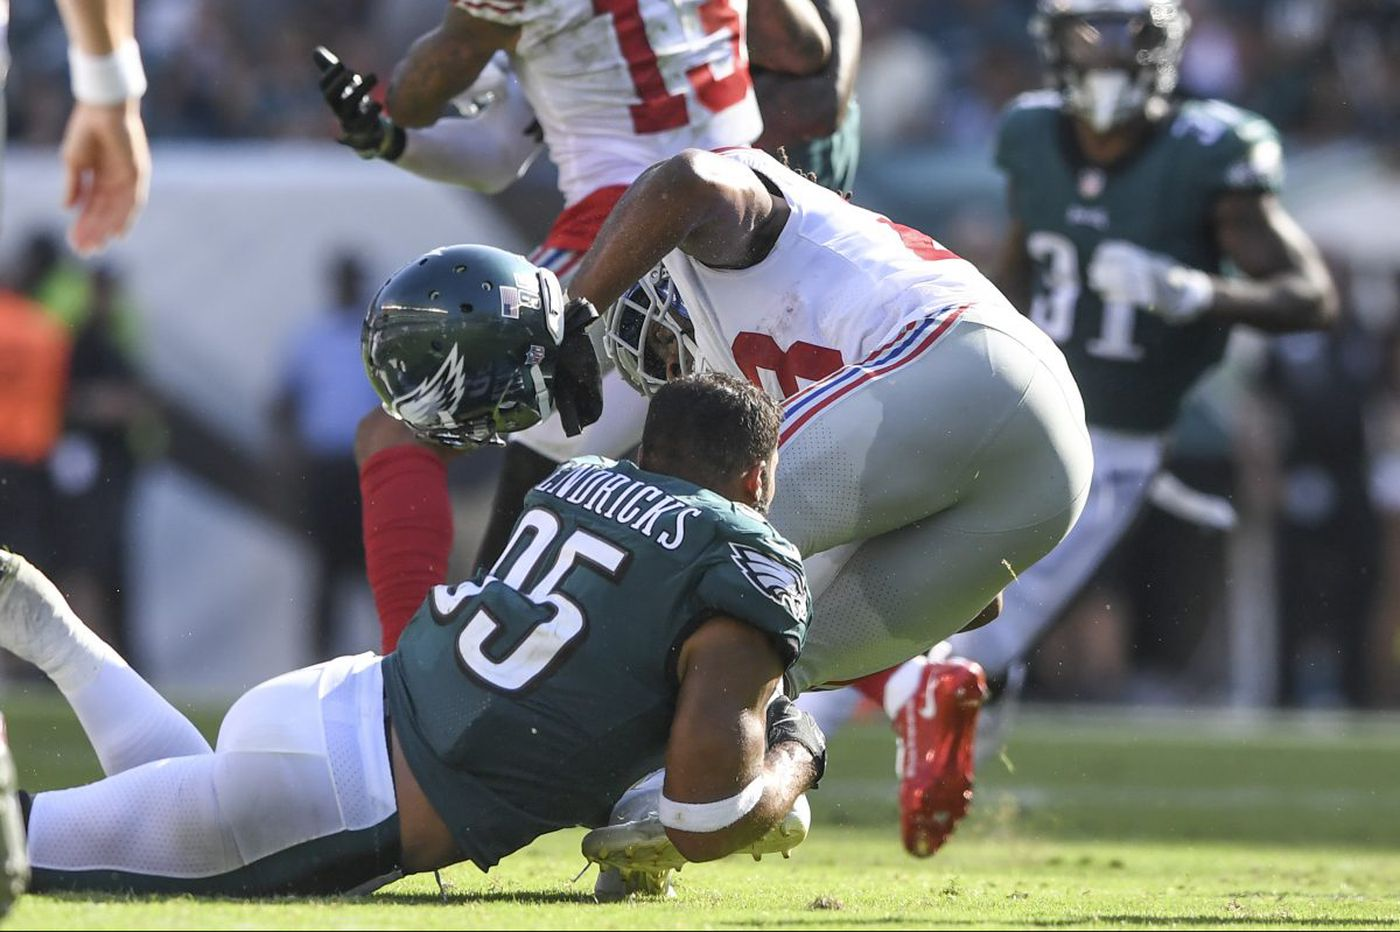 Mychal Kendricks (once again) can't hide frustration